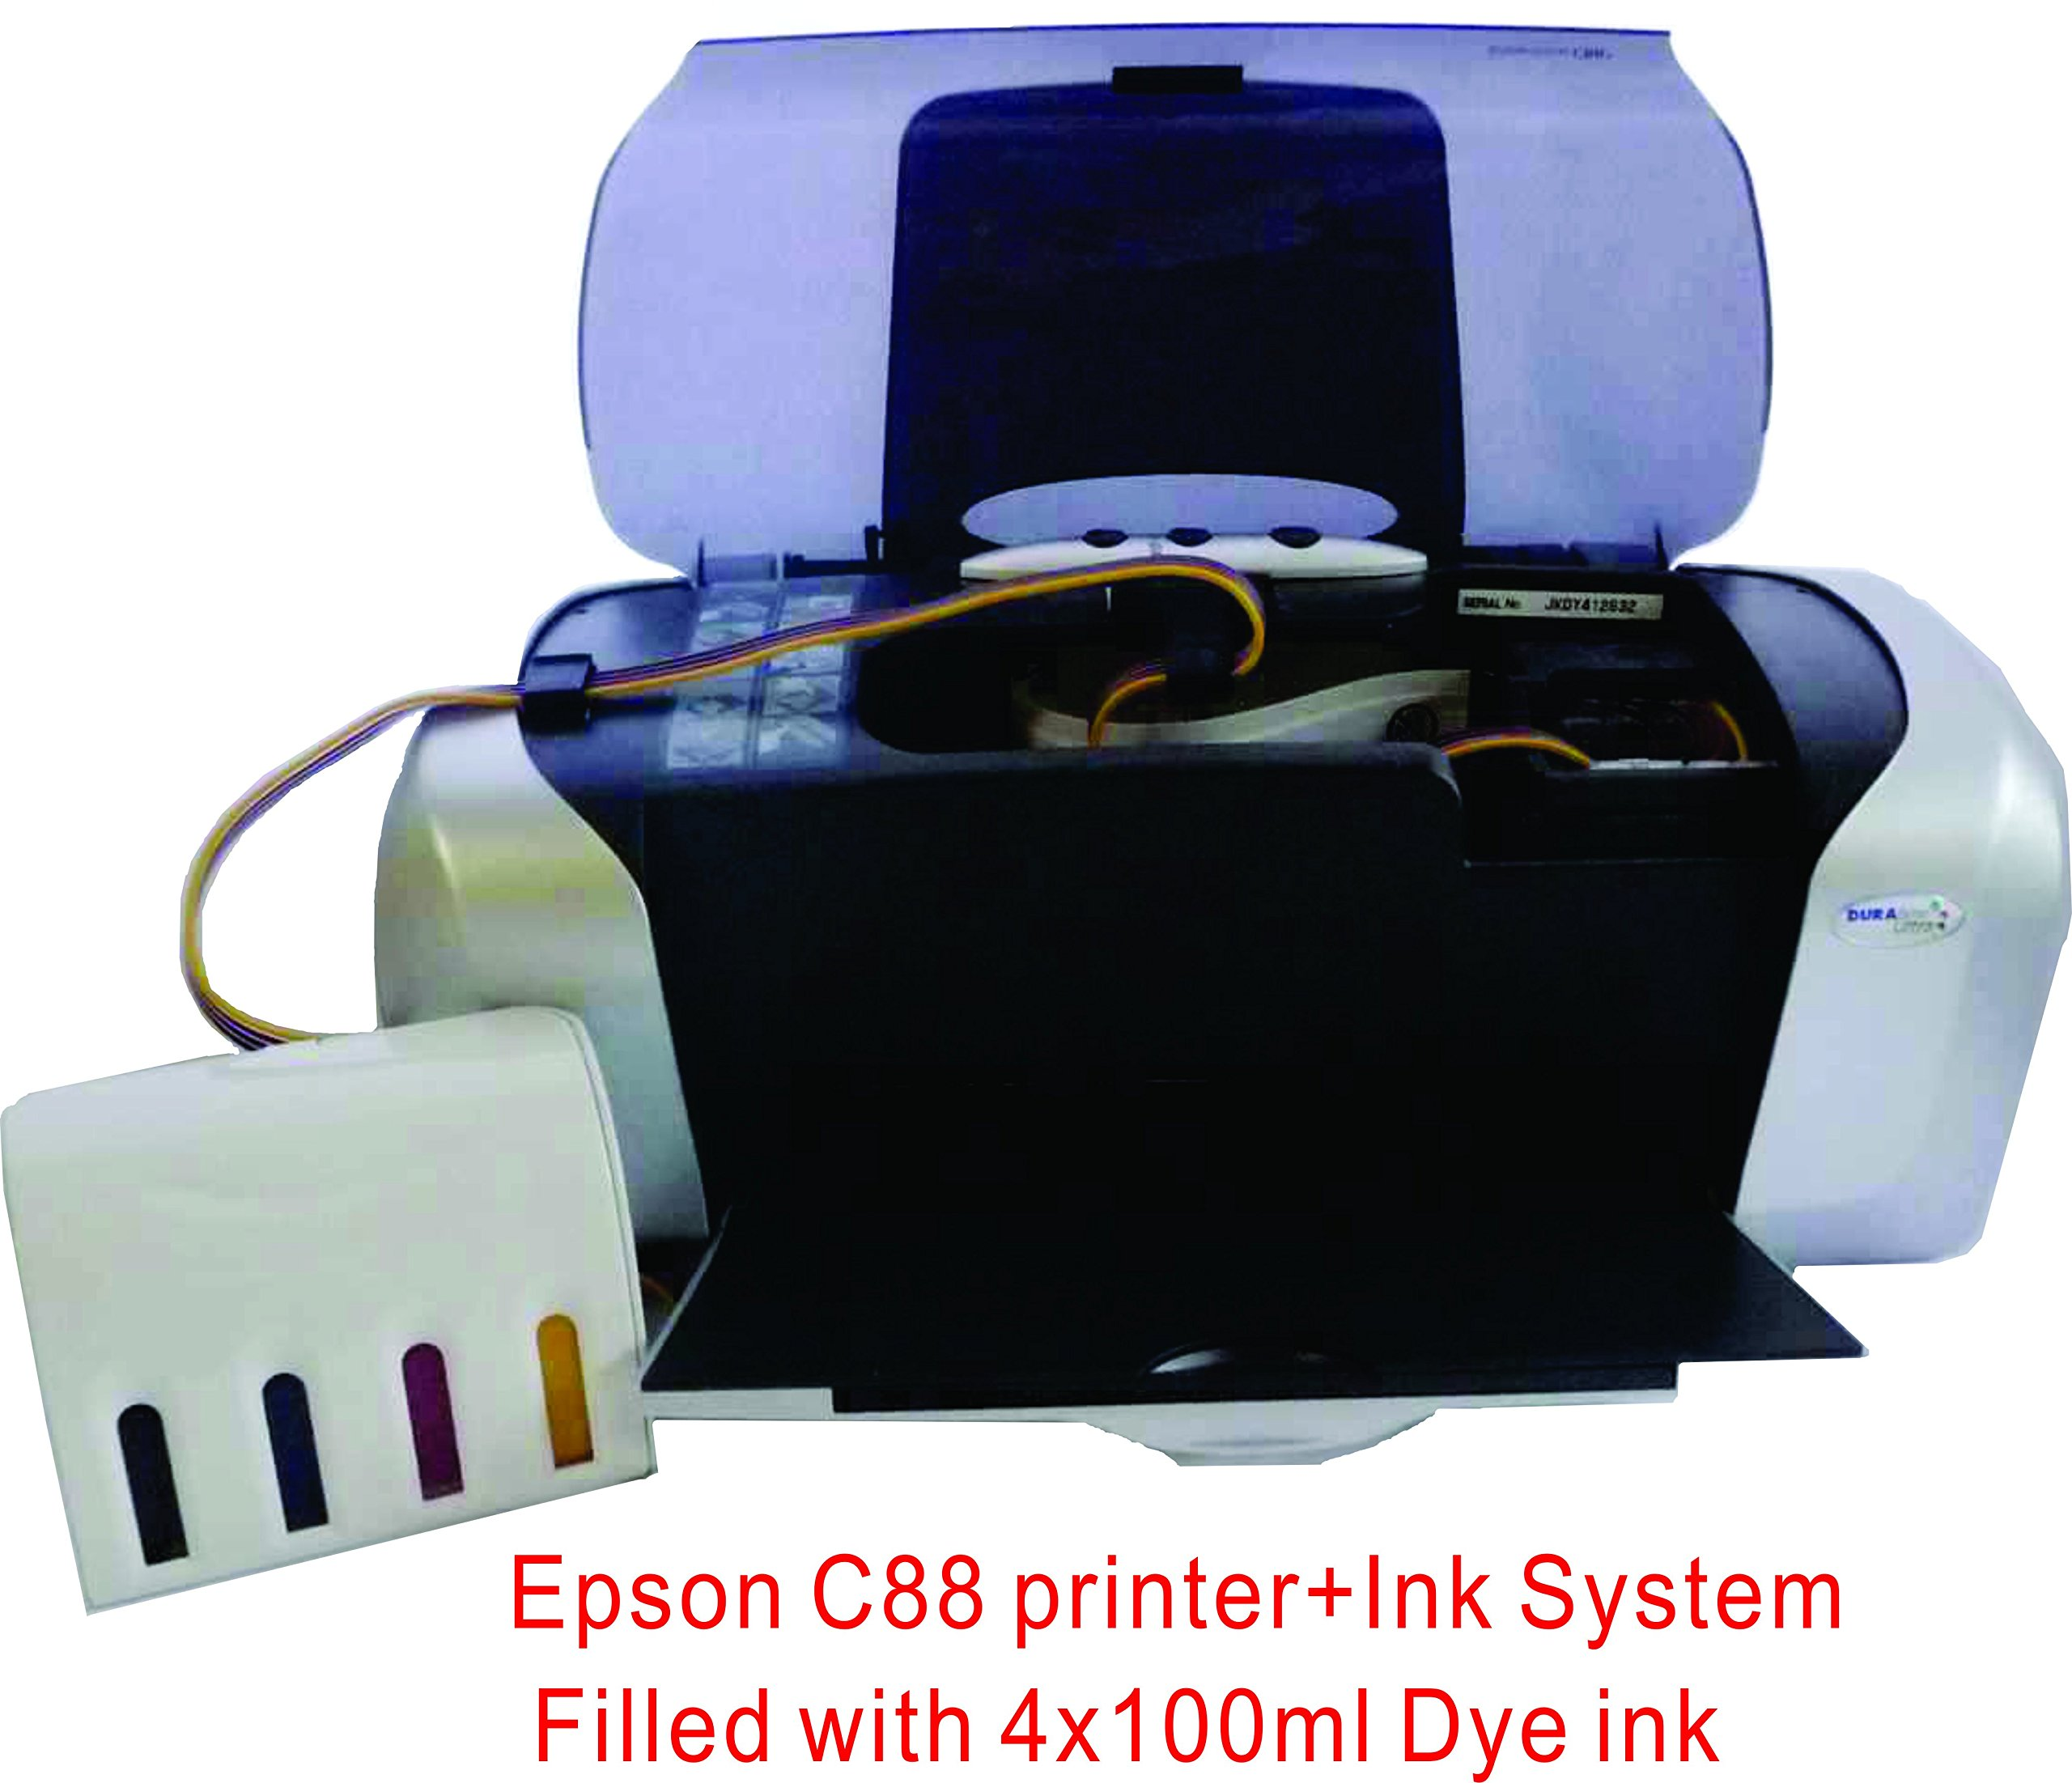 15x15'' Flat Heat Press A4 Epson Printer Paper Ink CISS Start-up KIT T-shirts by TRANSGERWORLD (Image #5)